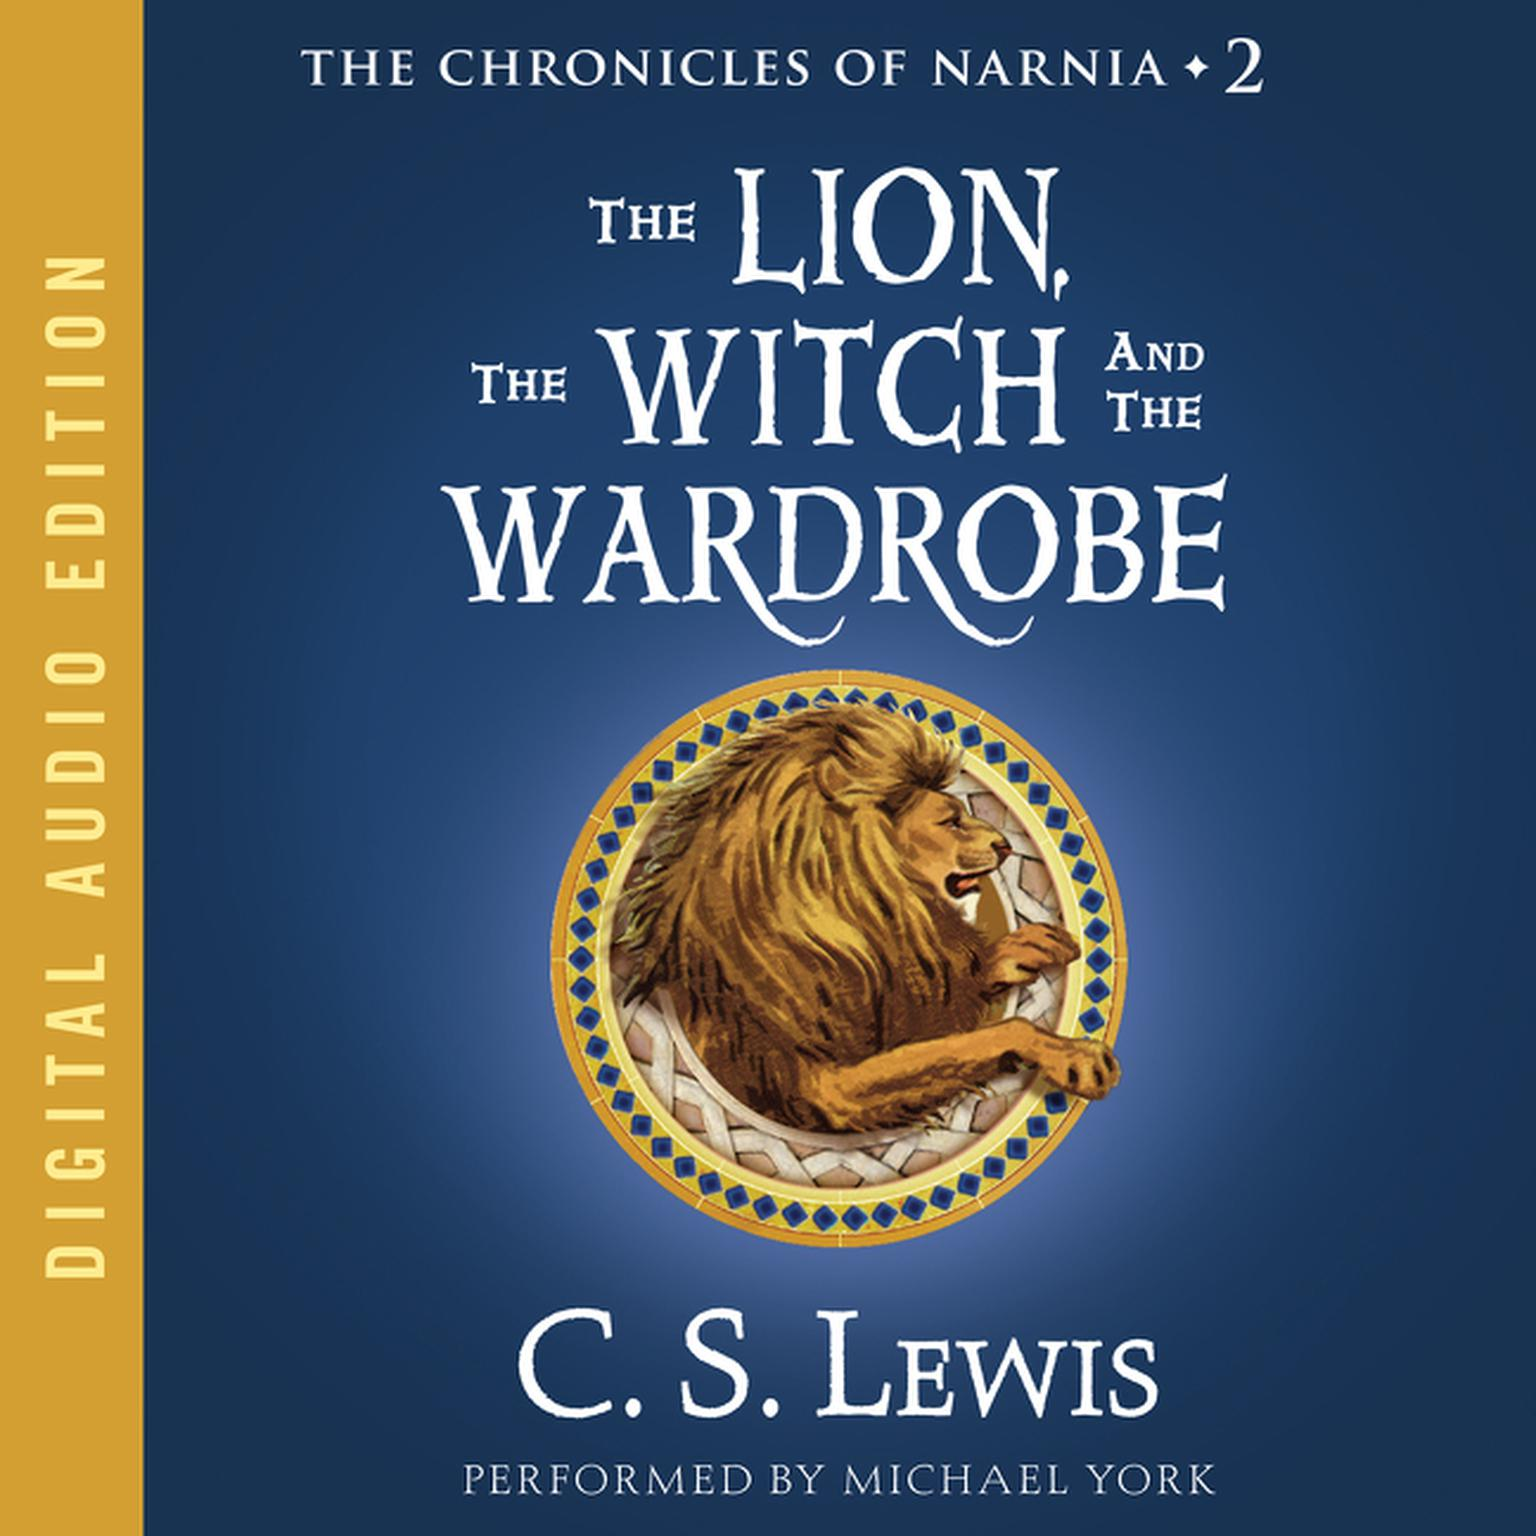 hear the lion the witch and the wardrobe audiobook by c s lewis extended audio sample the lion the witch and the wardrobe audiobook by c s lewis